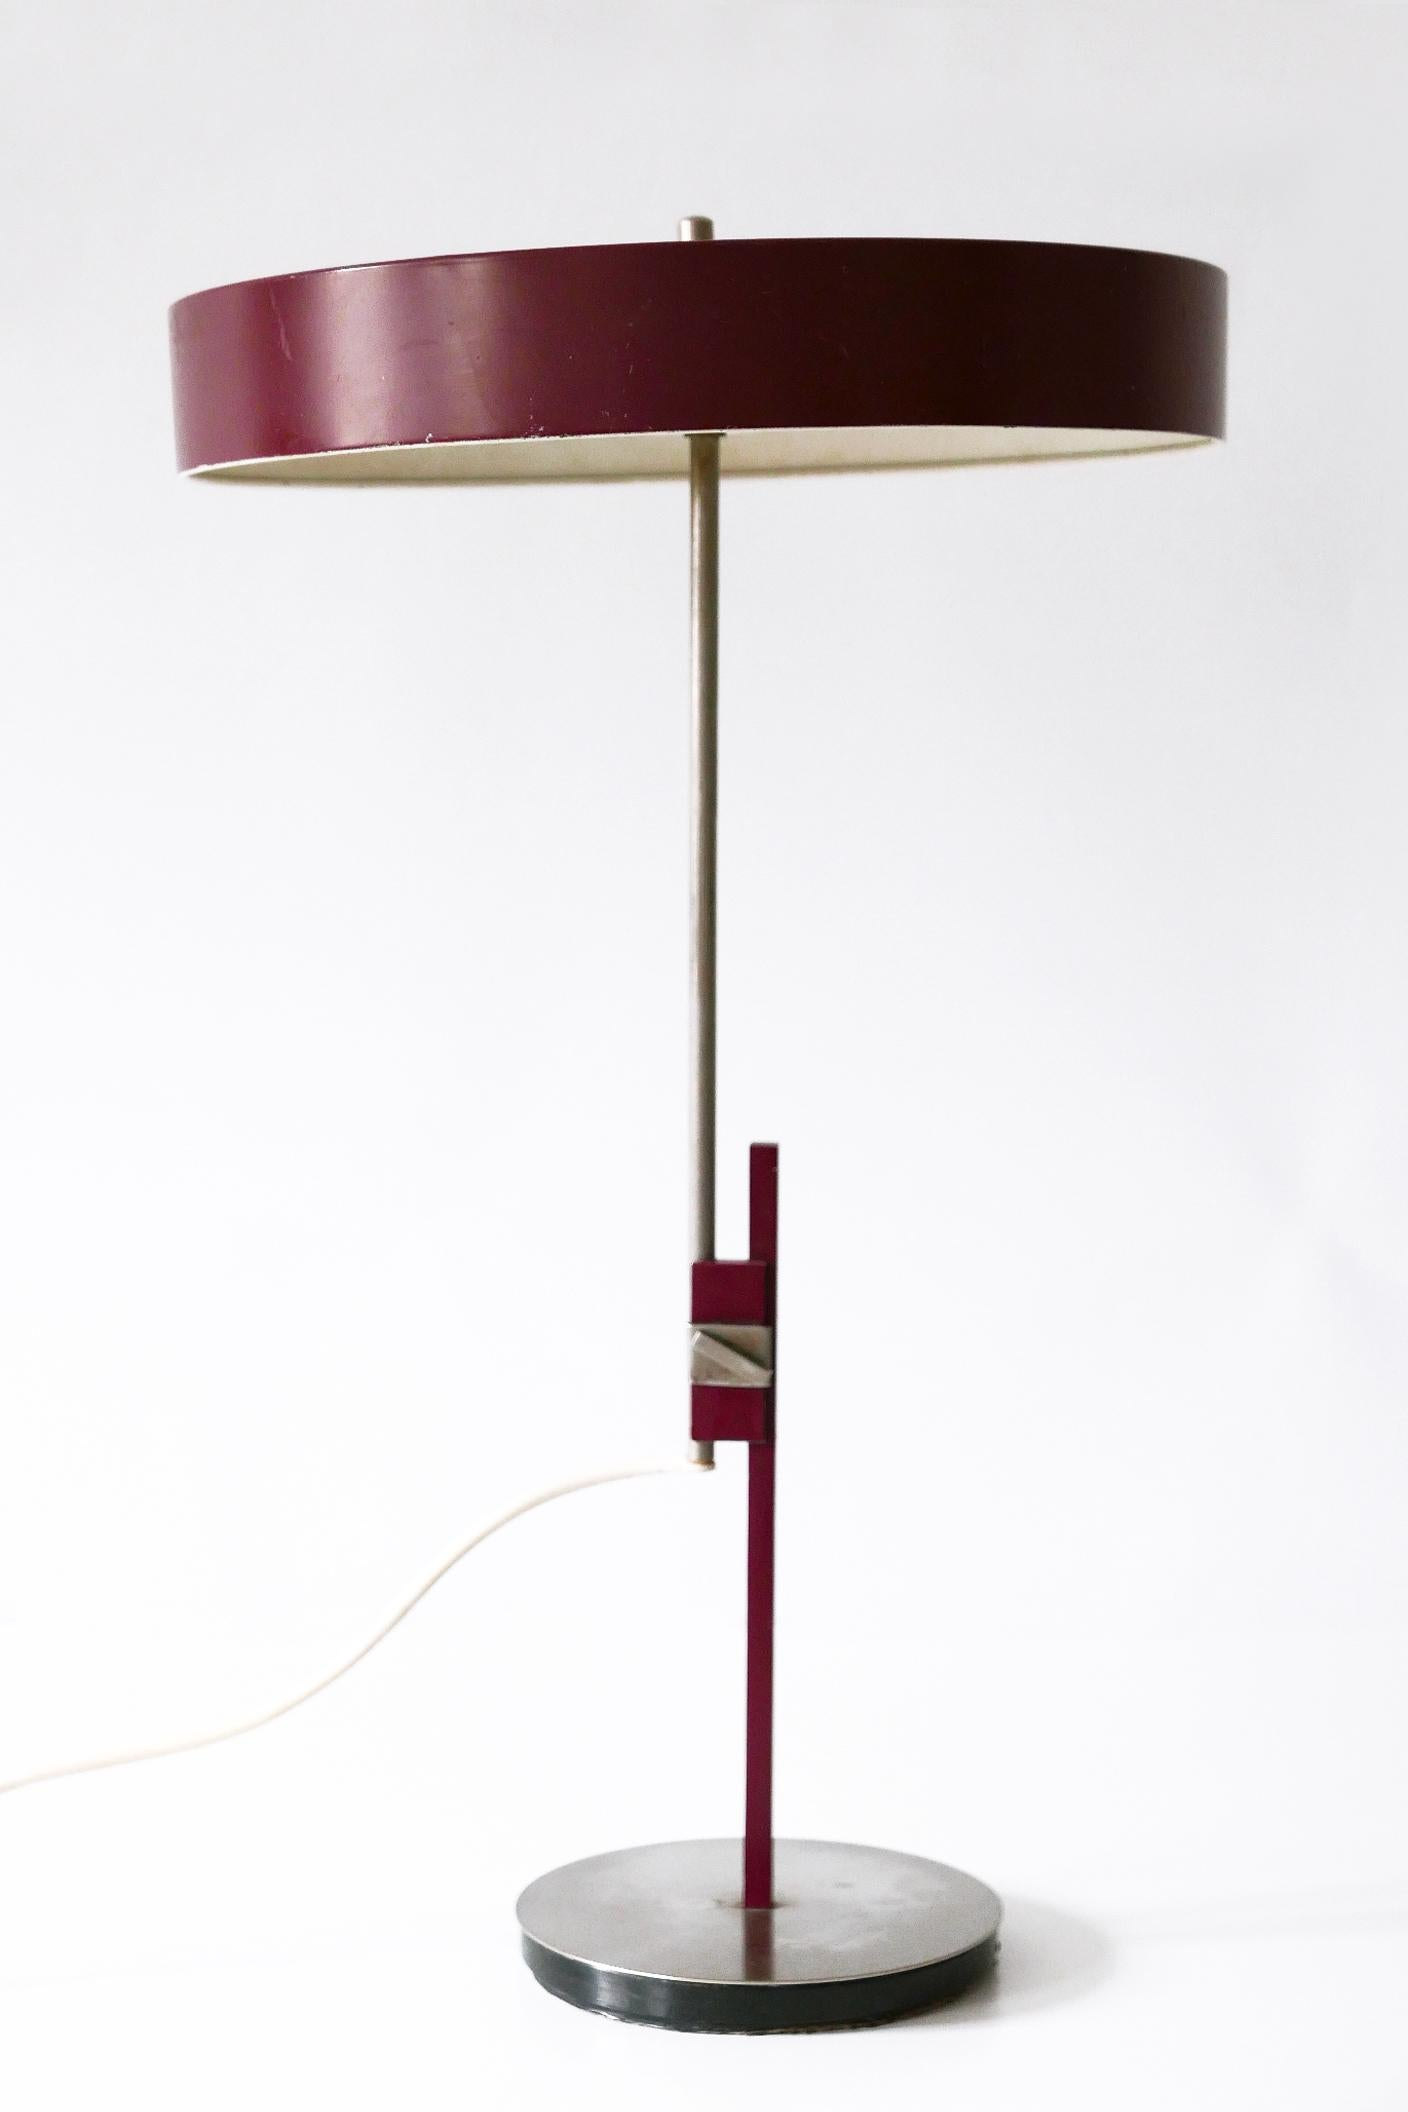 Leuchten Kaiser Luxury Mid-century Modern President Table Lamp By Kaiser Leuchten 1960s Germany For Sale At 1stdibs